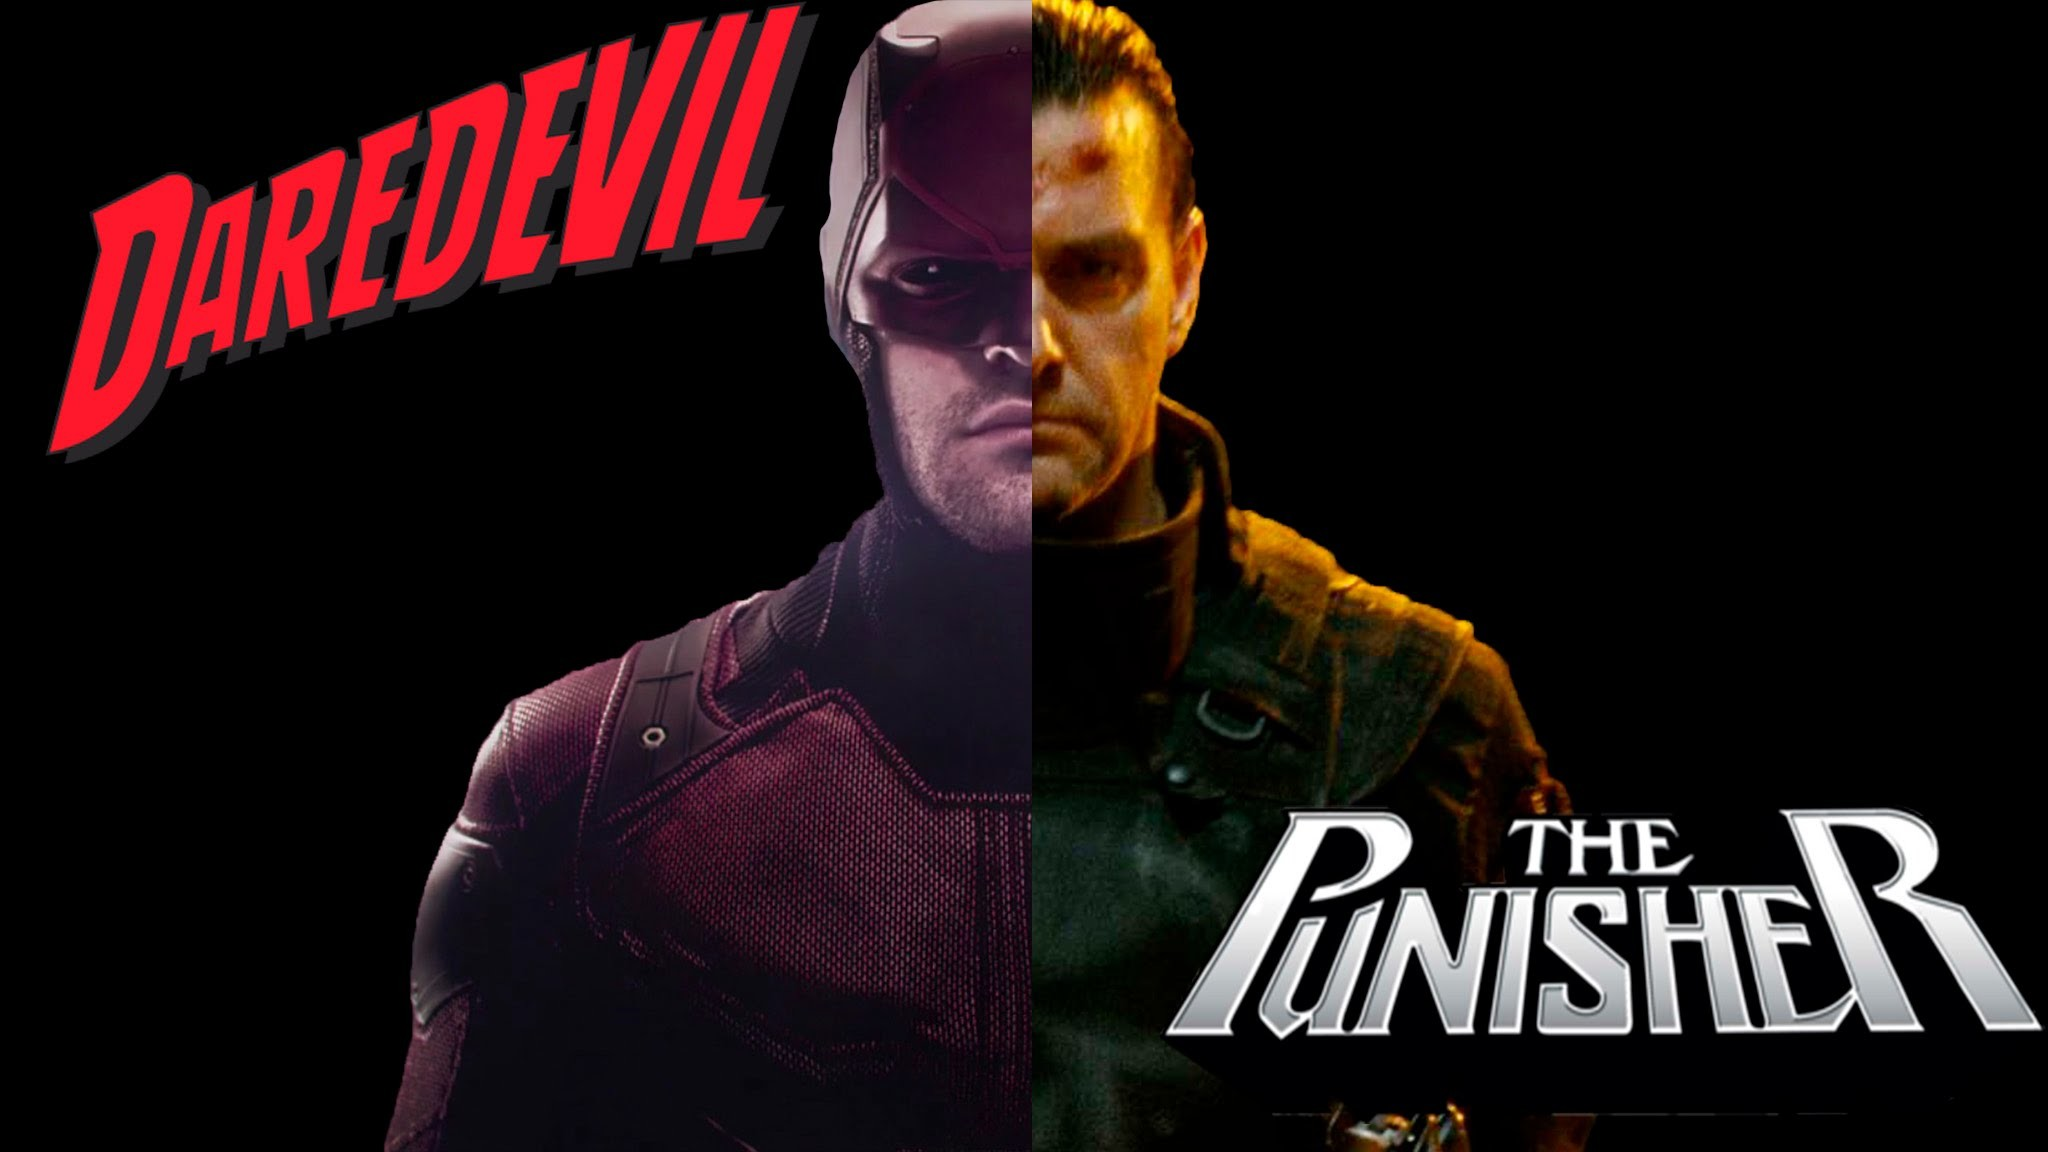 Res: 2048x1152, 'The Punisher' Netflix Show Rumors Debunked: New 'Daredevil' Spinoff Not In Development, Says Marvel | Player.One